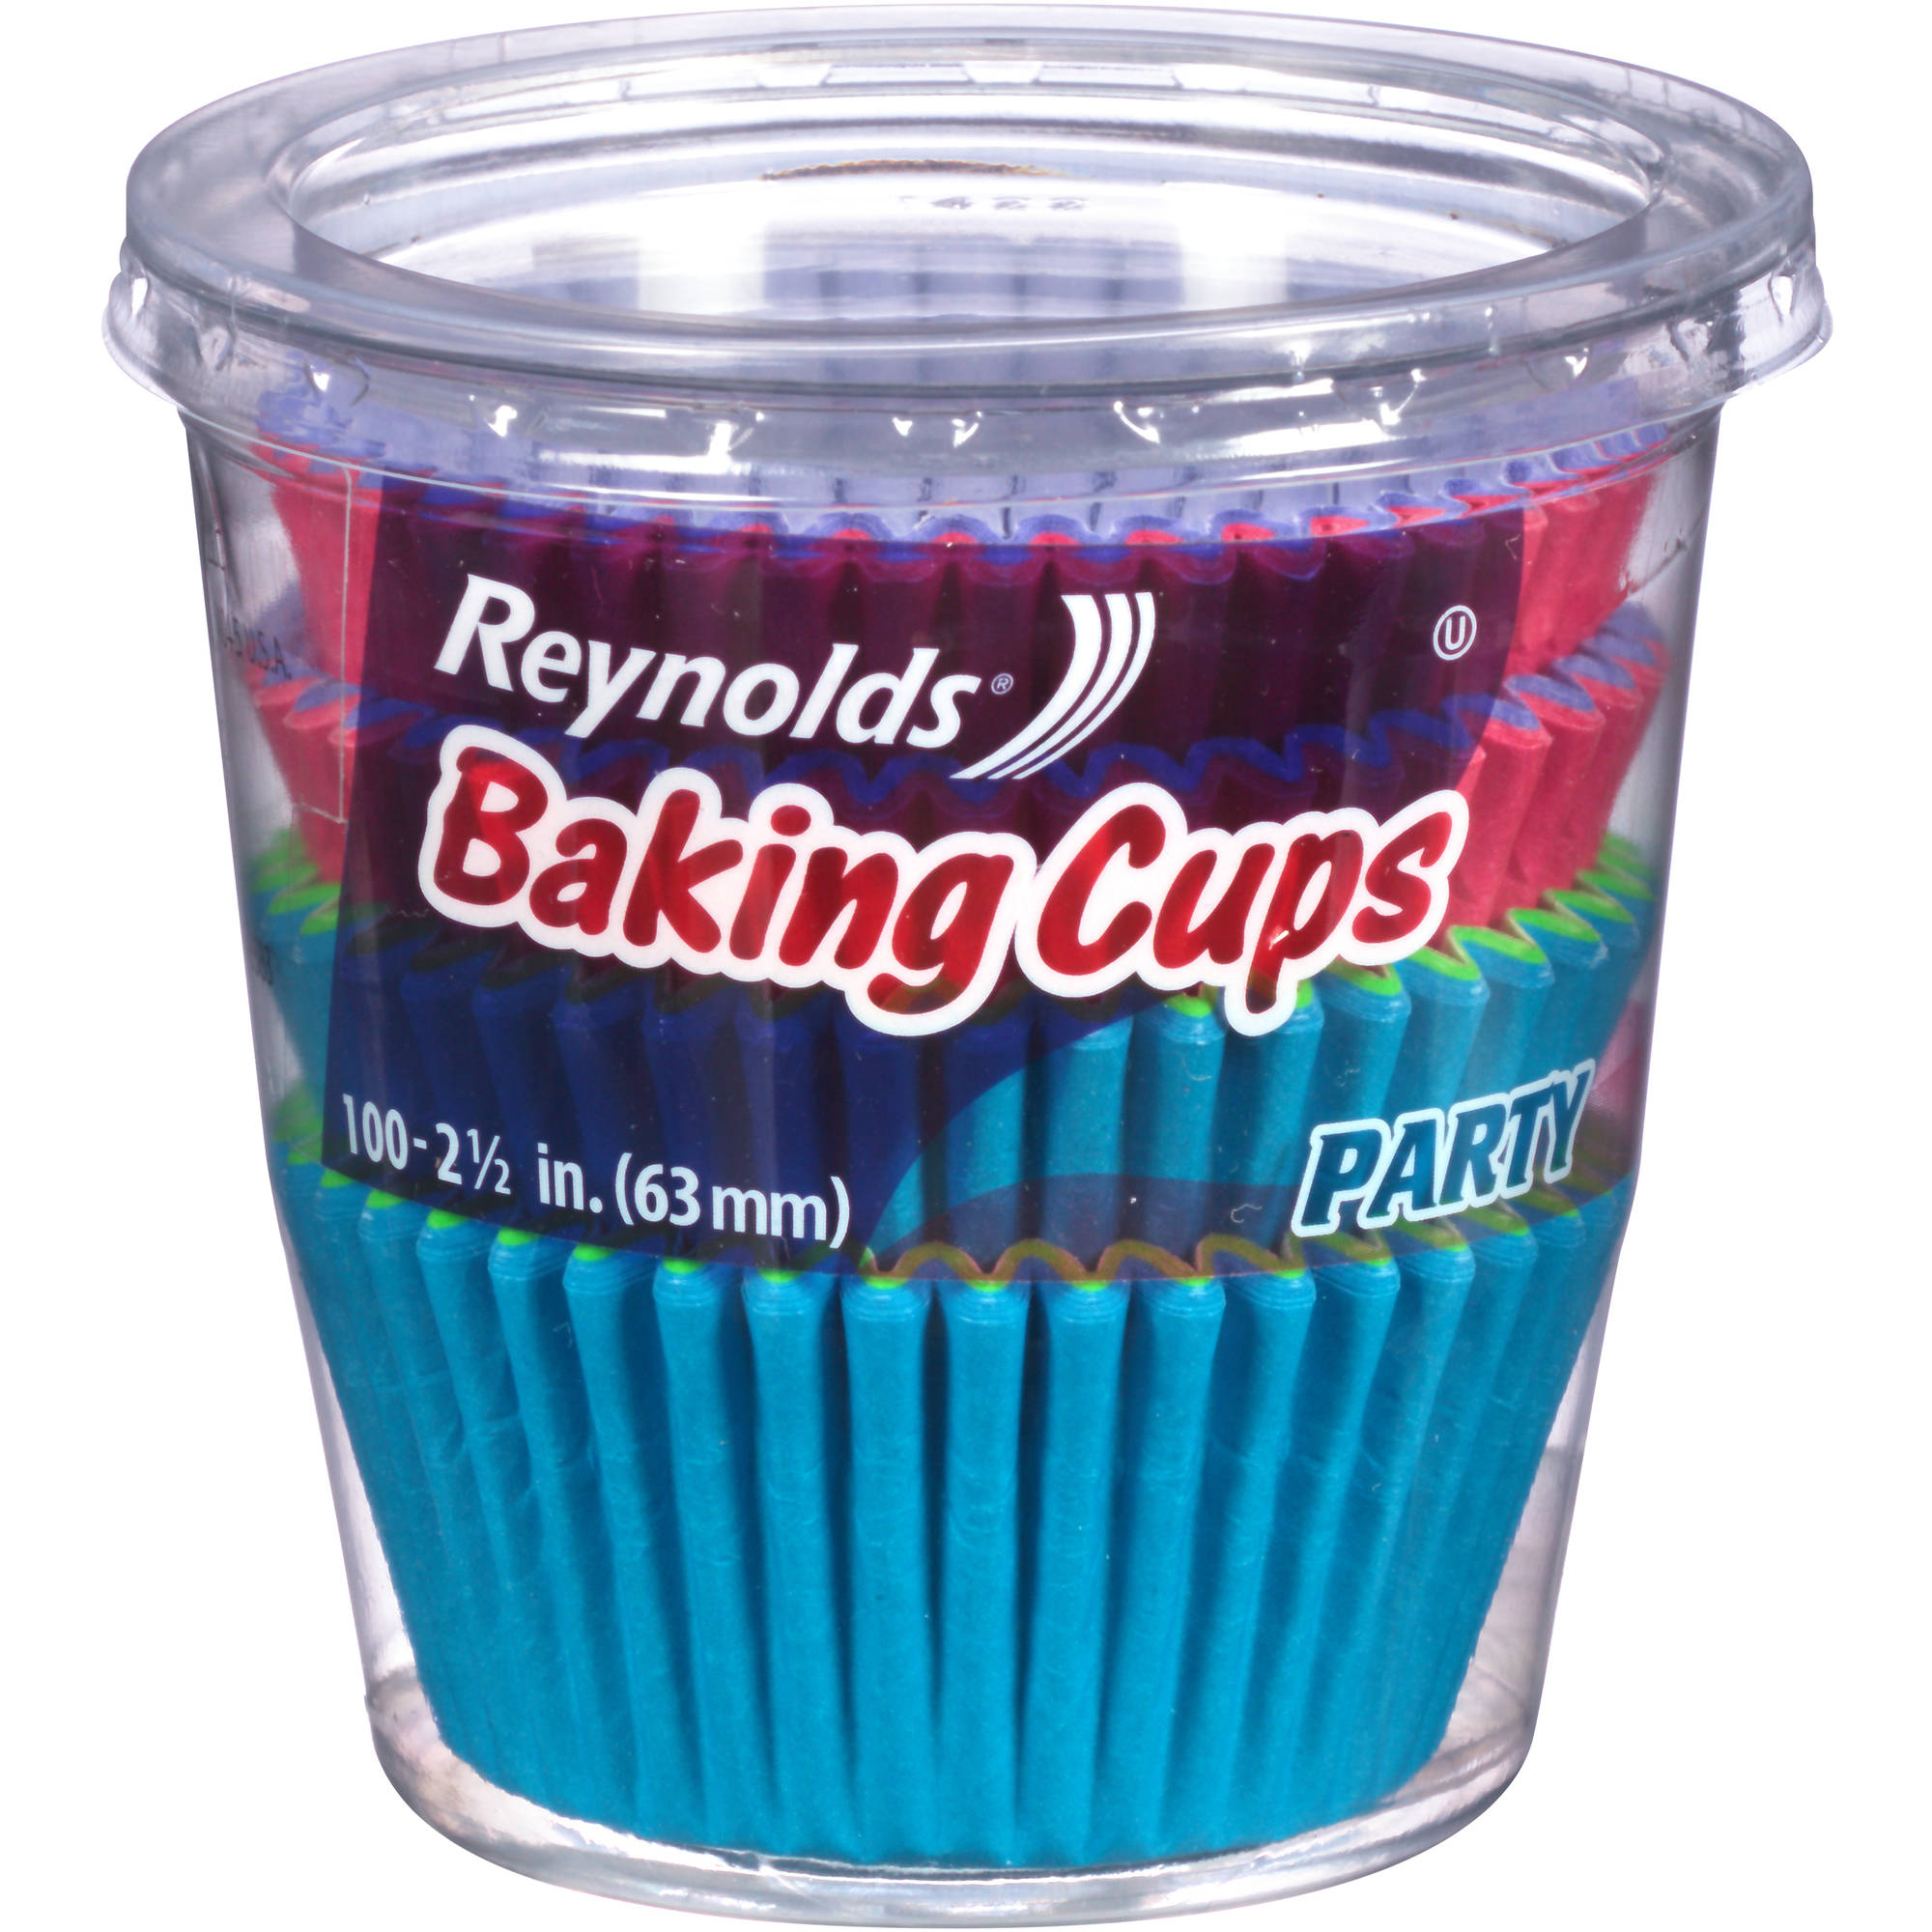 Reynolds Party Baking Cups, 100 count